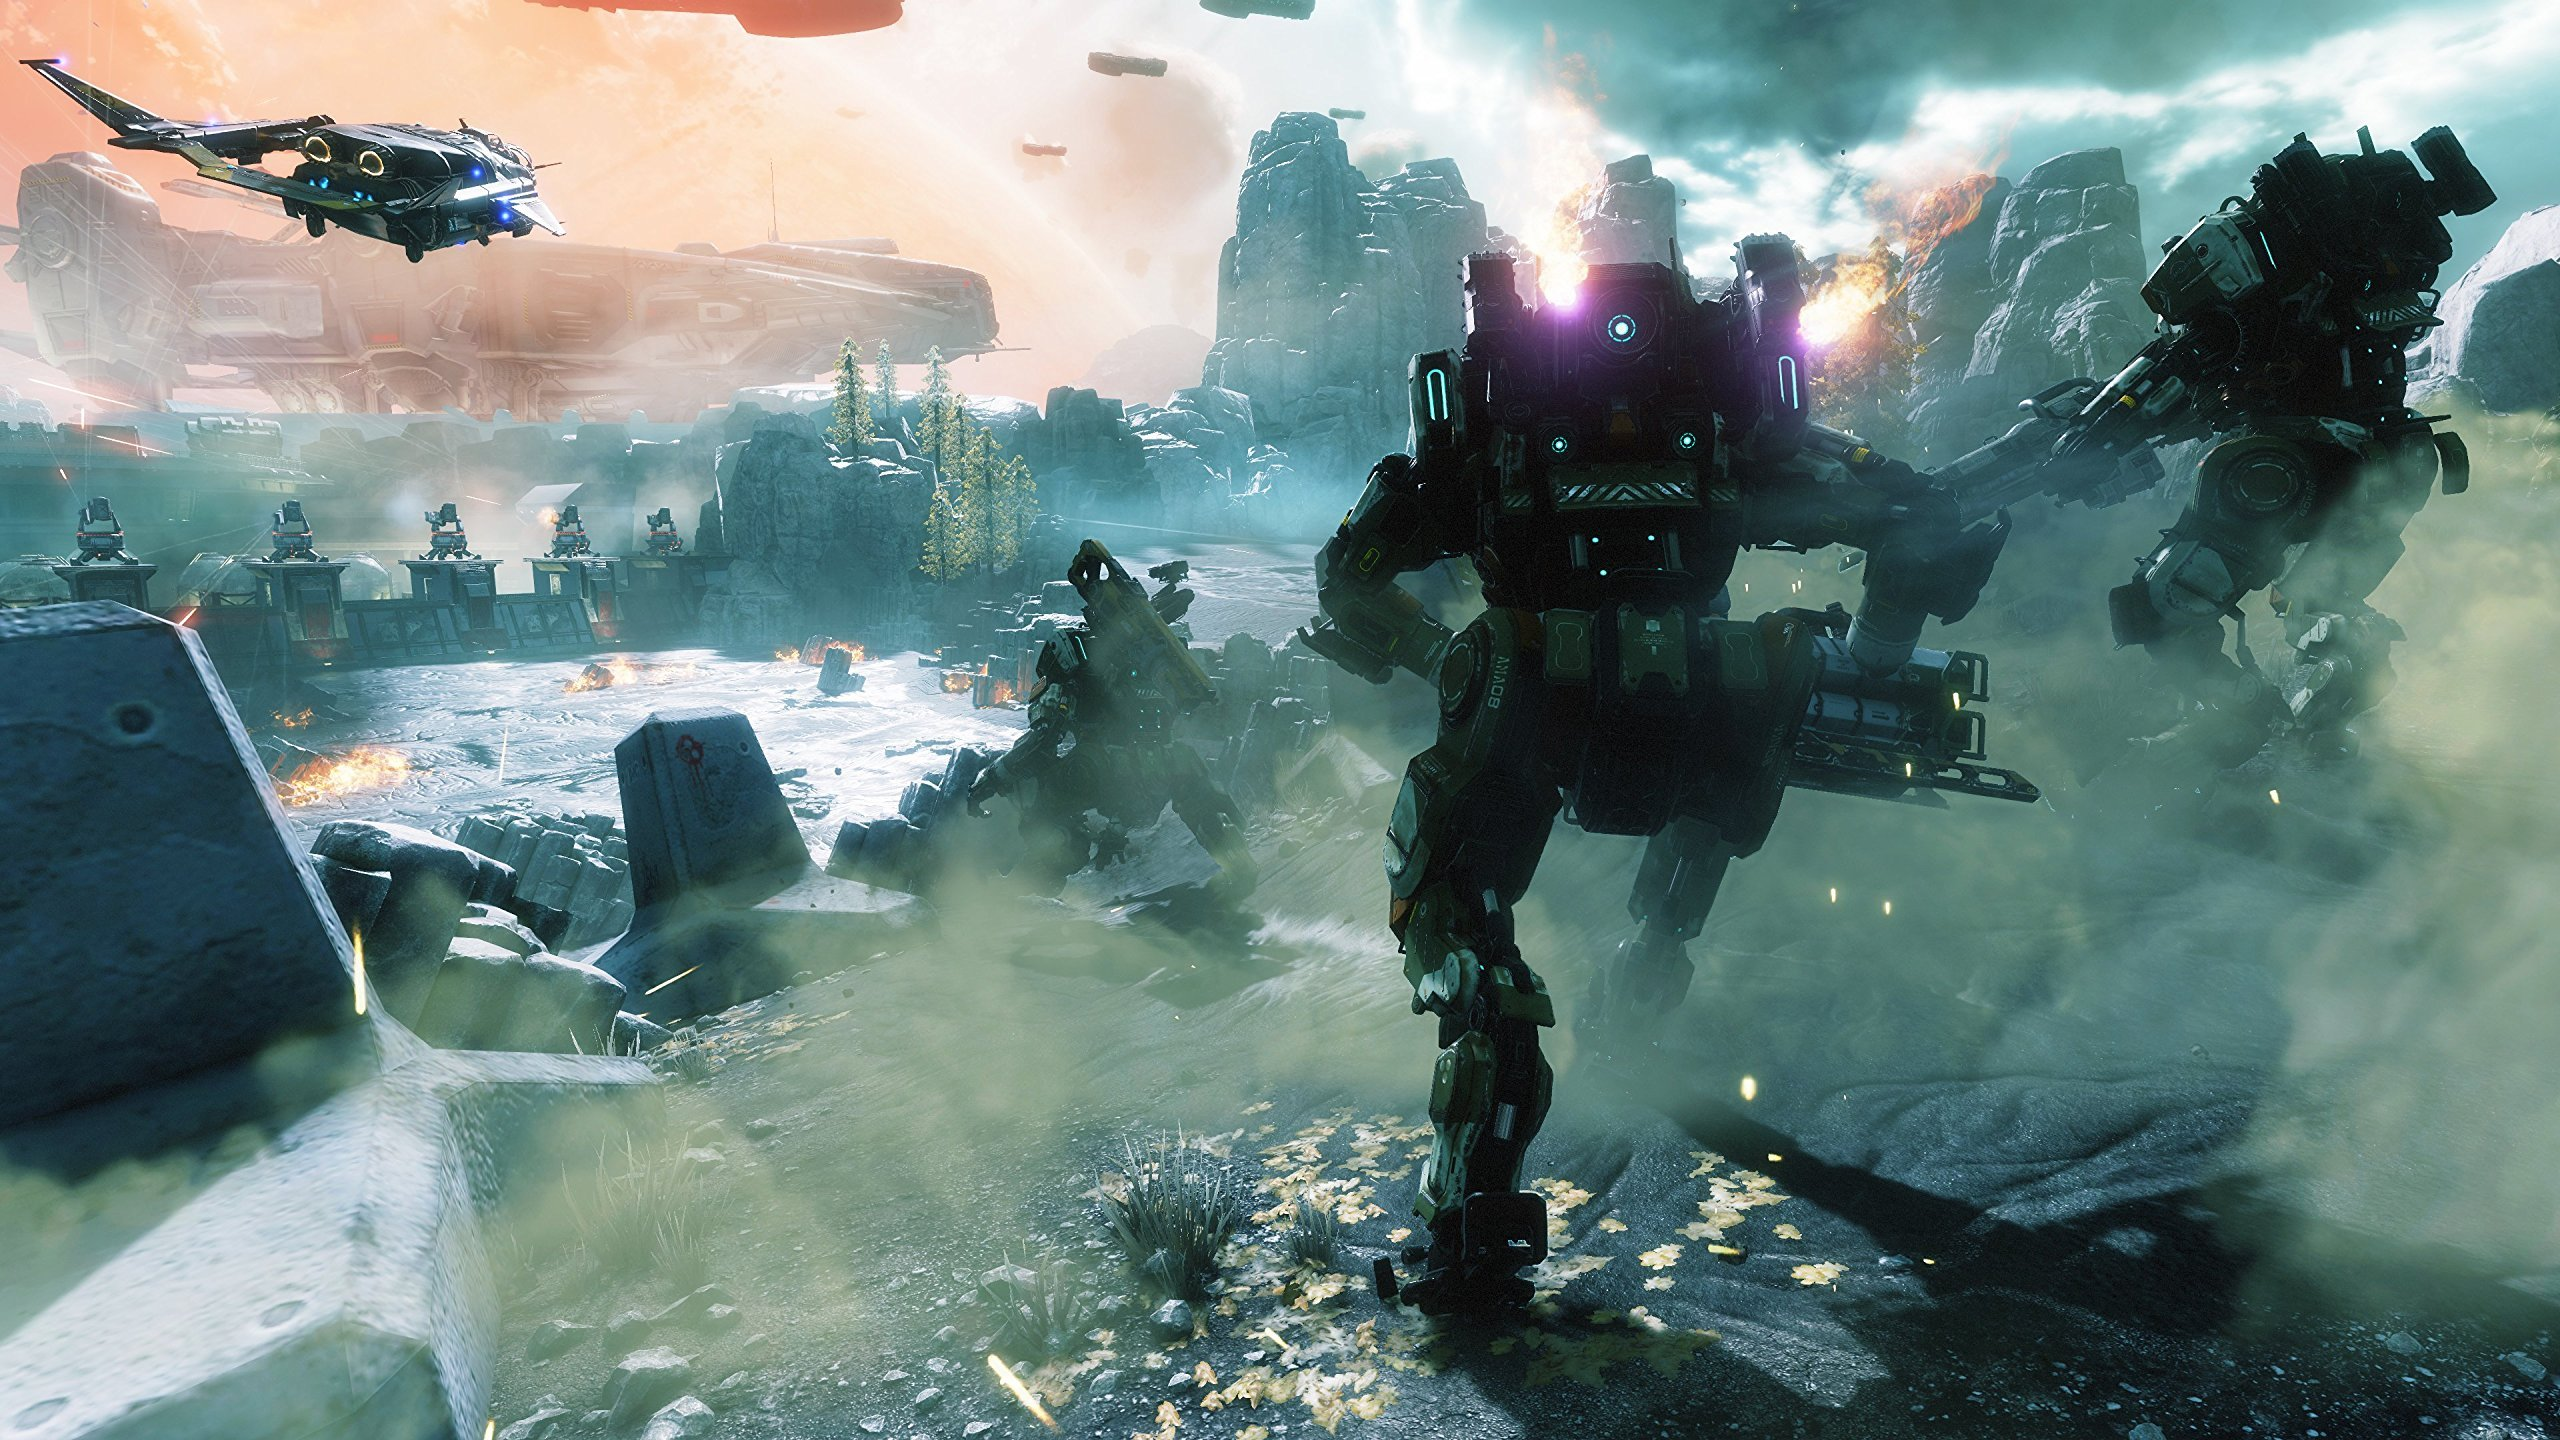 Titanfall 2 - Xbox One (Certified Refurbished) by Electronic Arts (Image #2)